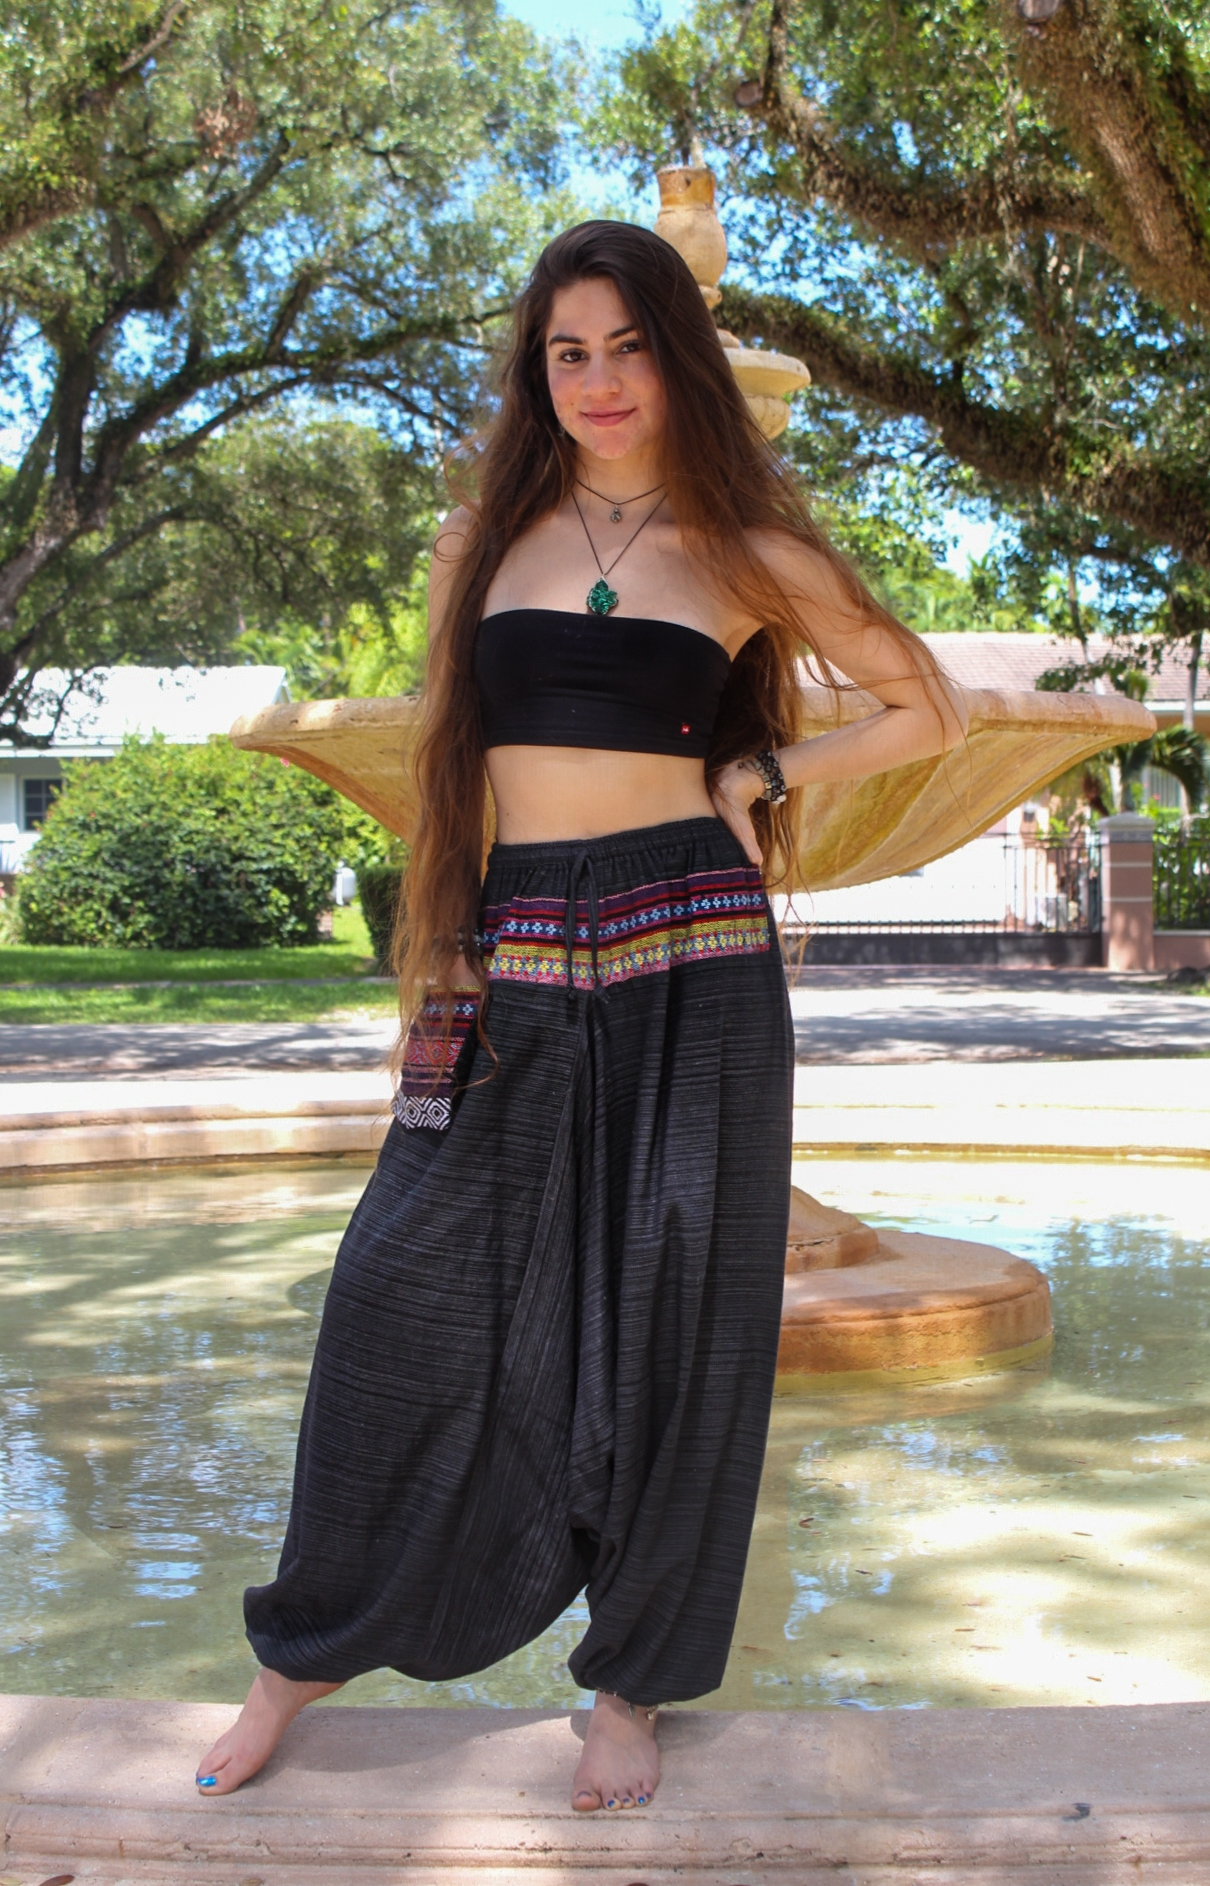 Model Wearing Handmade Thai Pants and Agate Necklace